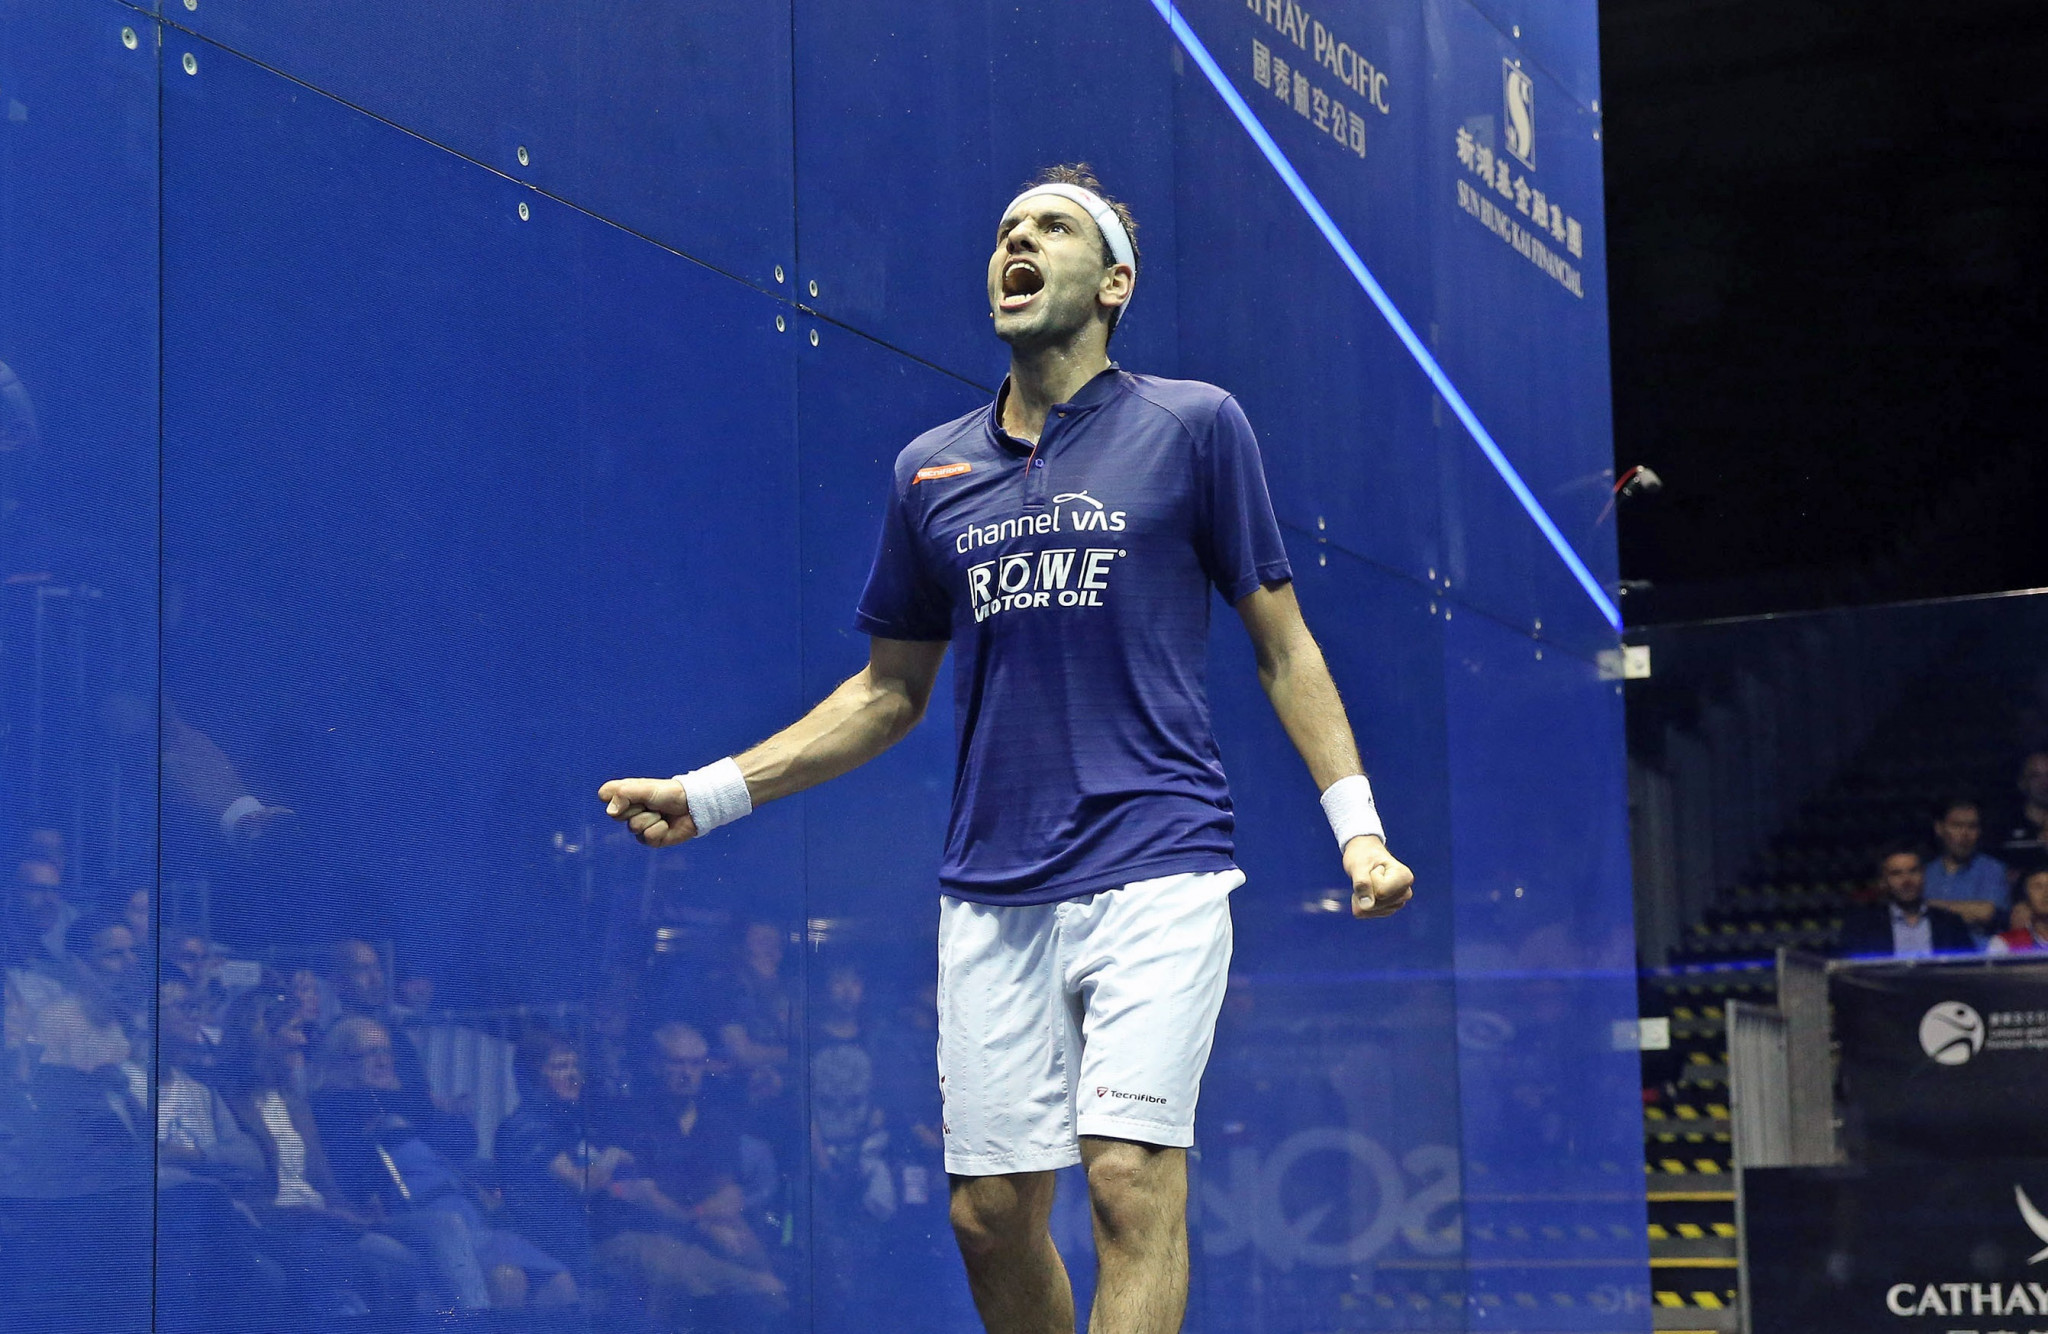 PSA Hong Kong Open to feature two all-Egyptian finals for first time